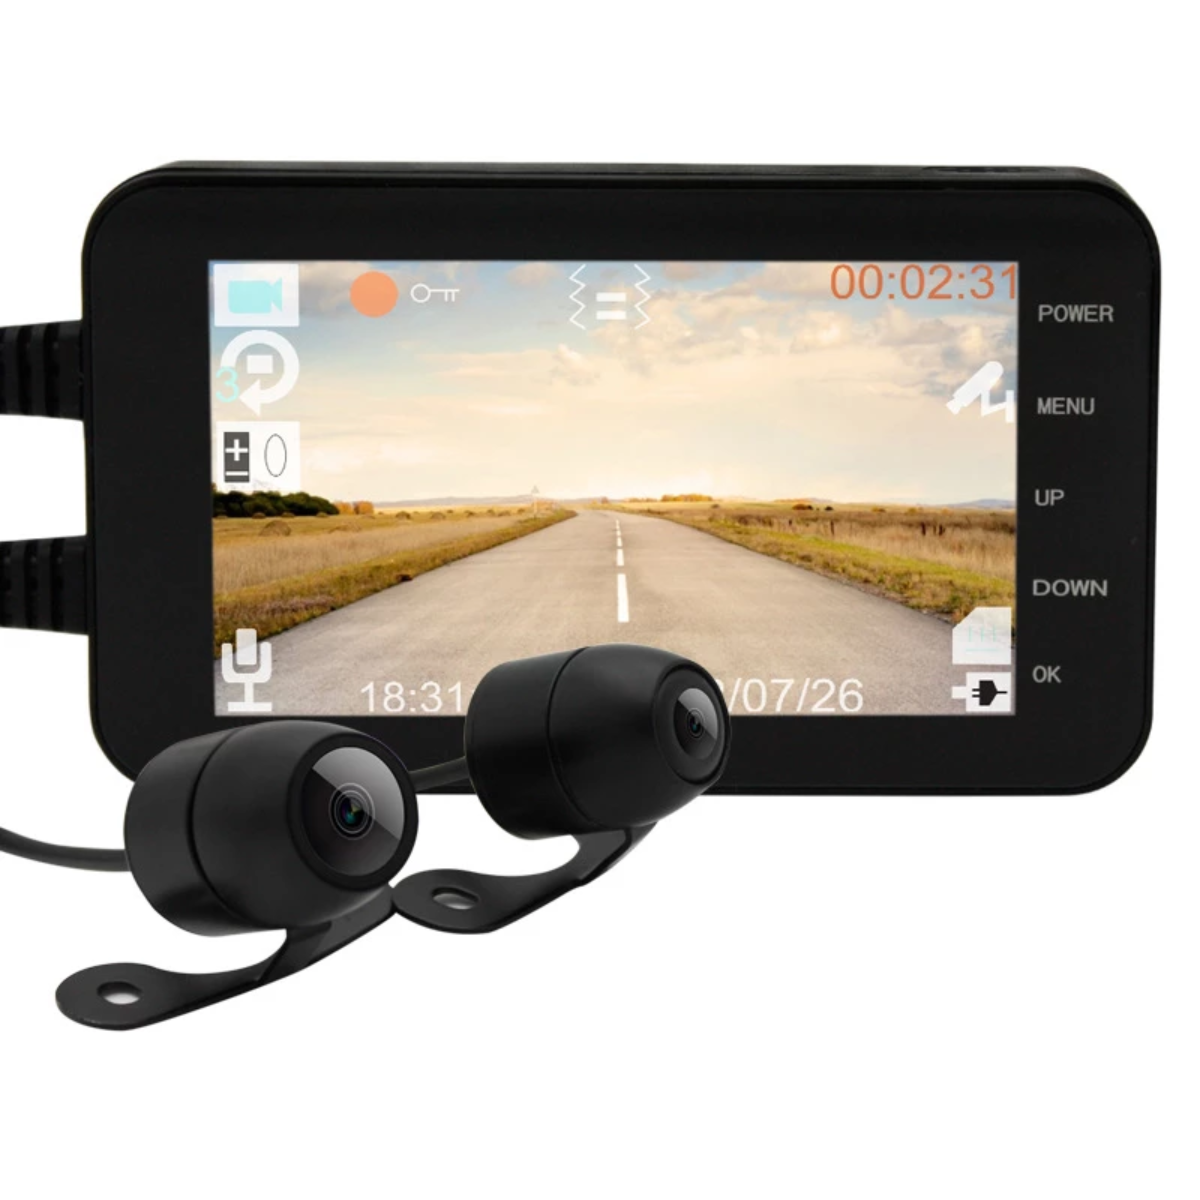 Why Do You Need to Install a Motorcycle Dash Cam?